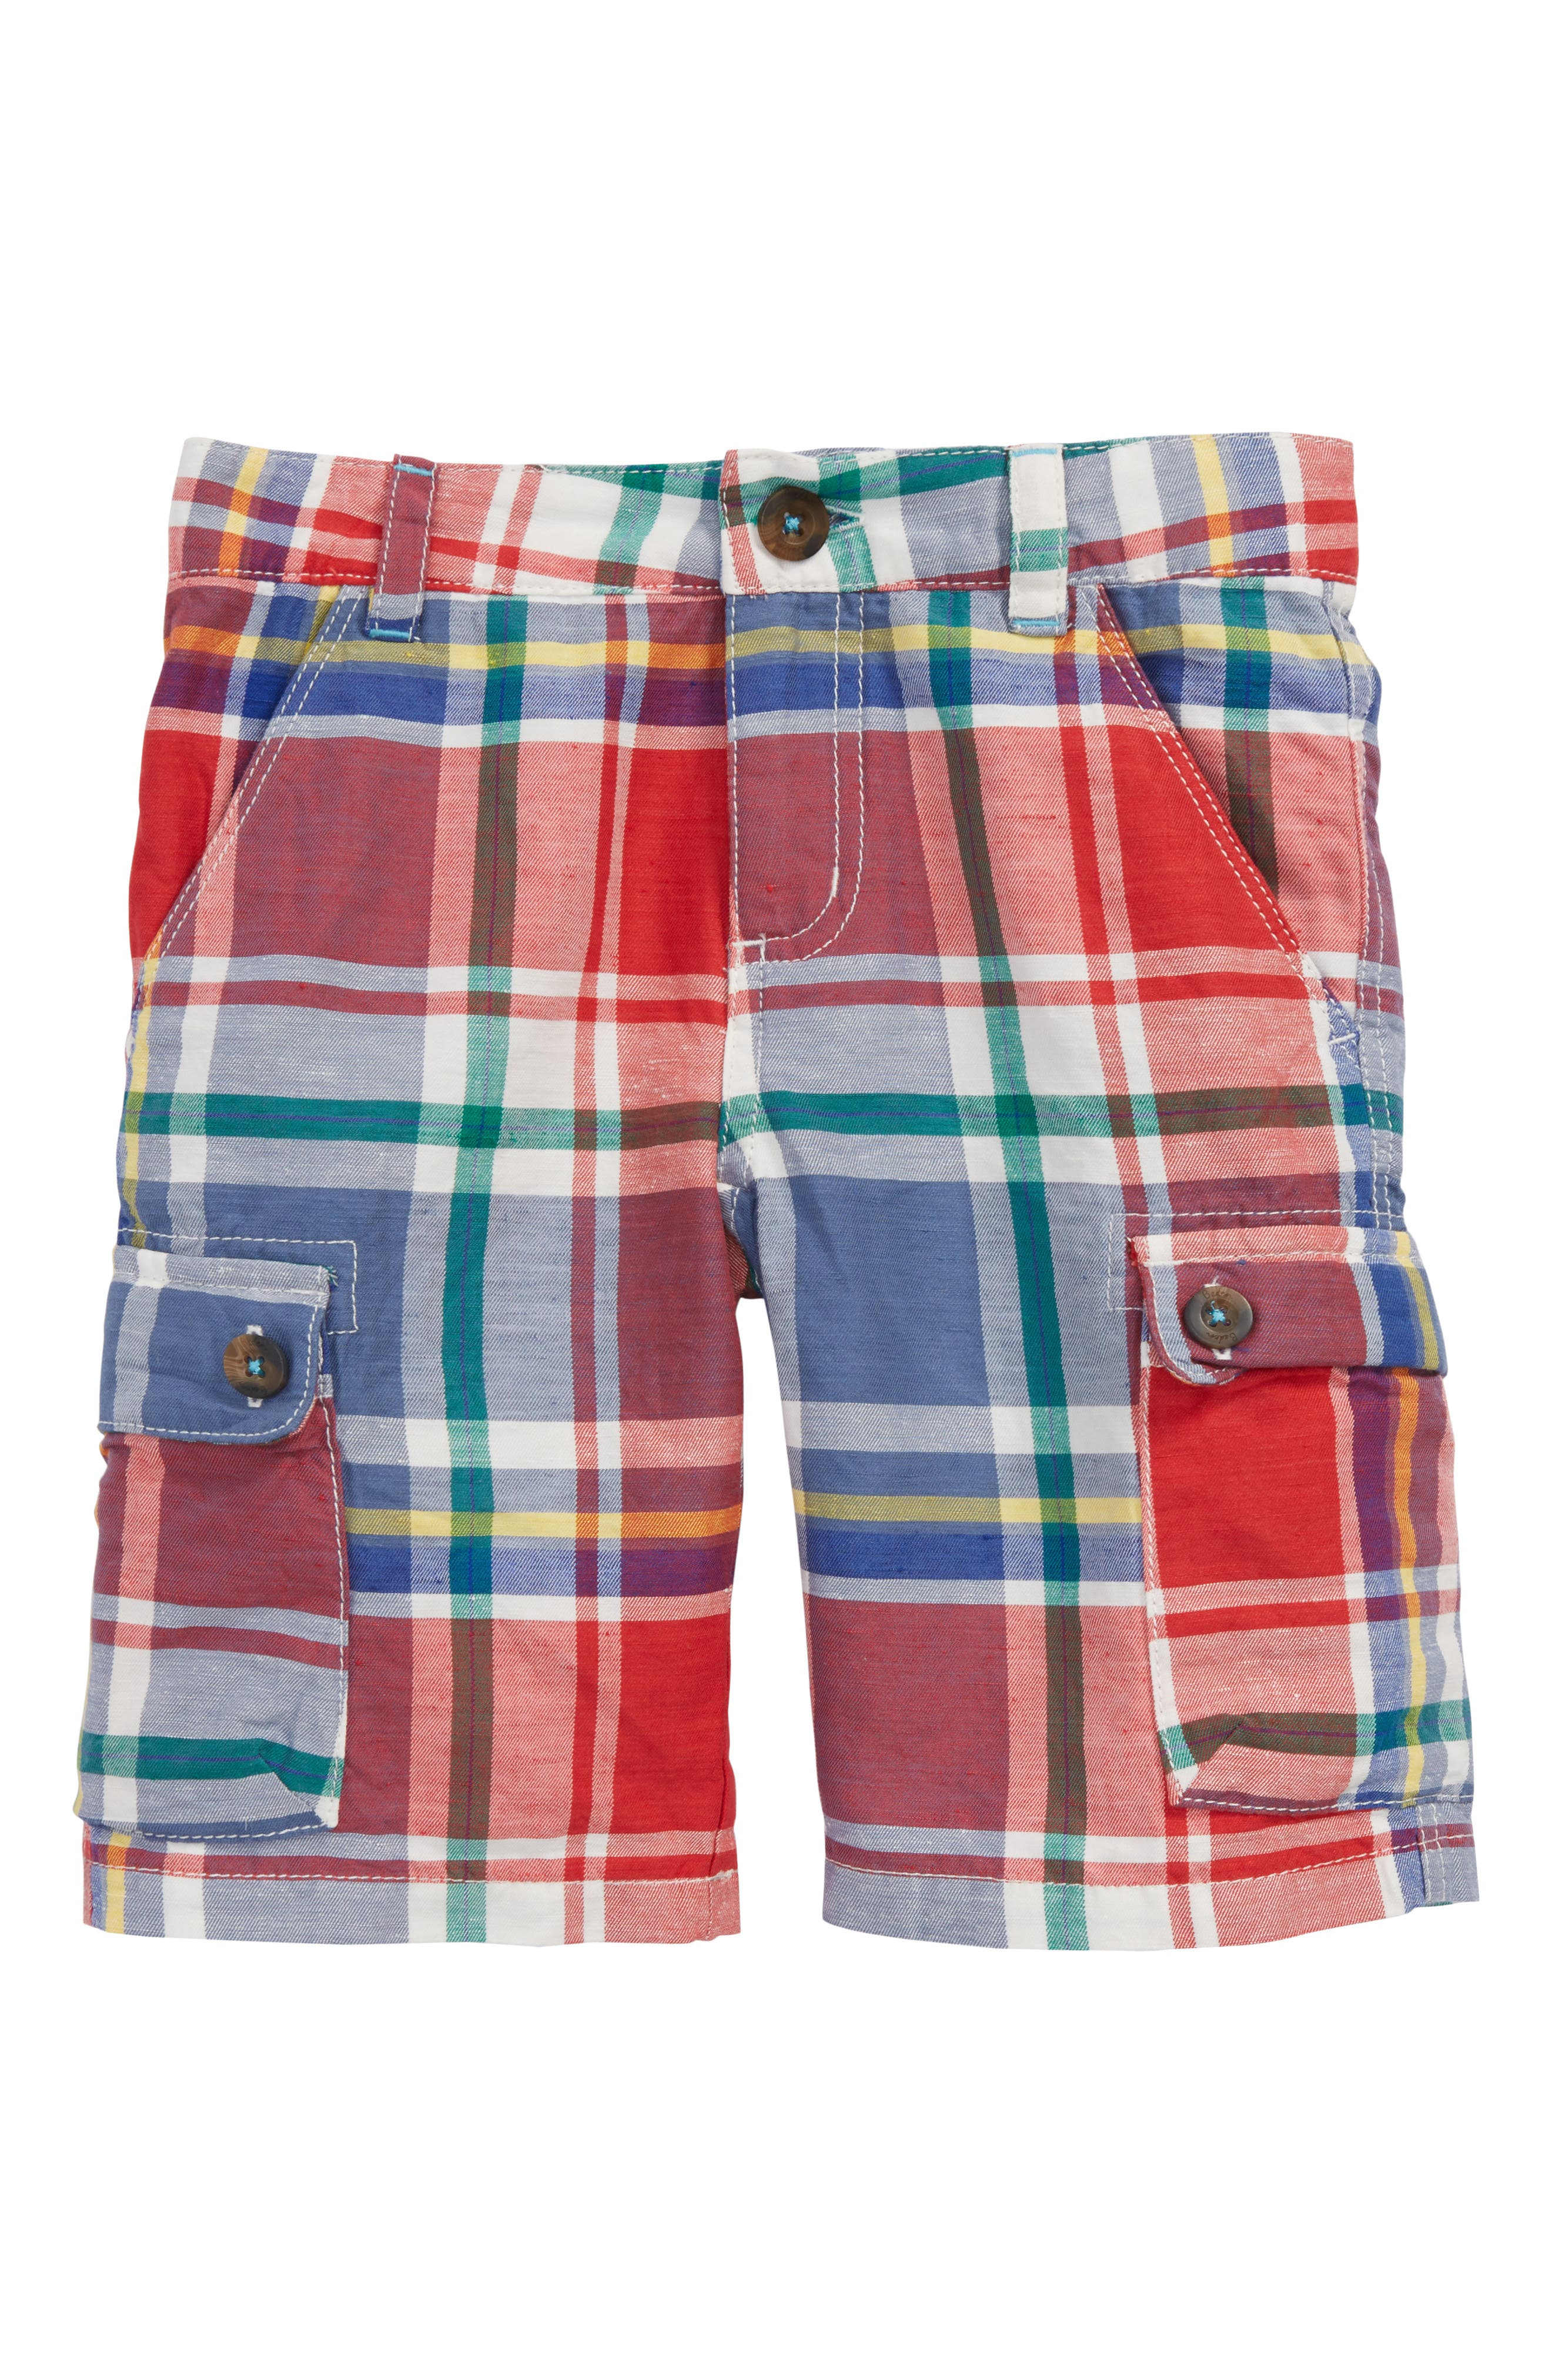 Plaid Cargo Shorts,                             Main thumbnail 1, color,                             Washed Crimson Red/ Blue